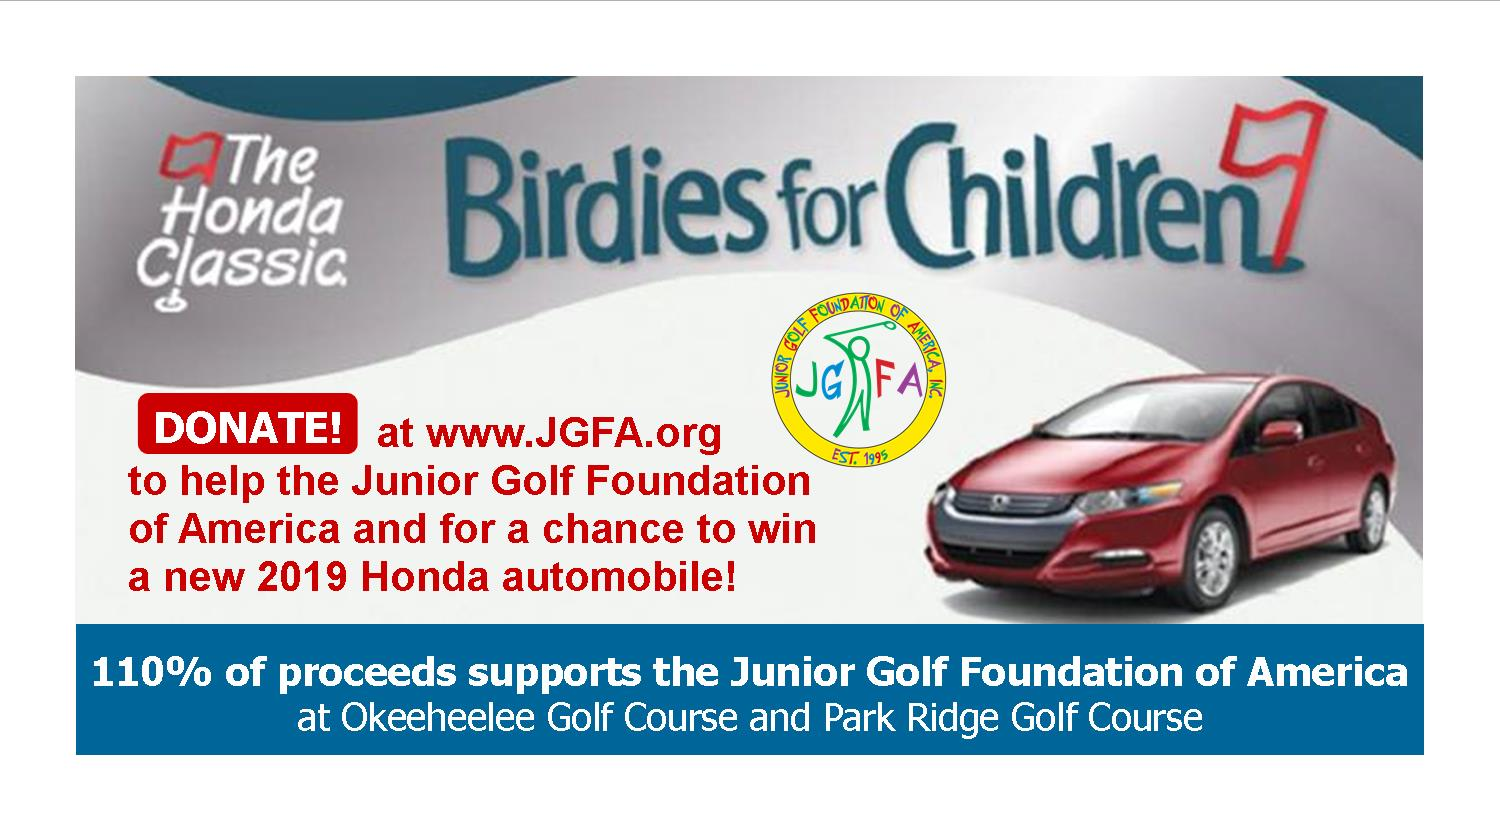 Birdies for Children Web link box 2018 2019 Donate at www.jgfa.org